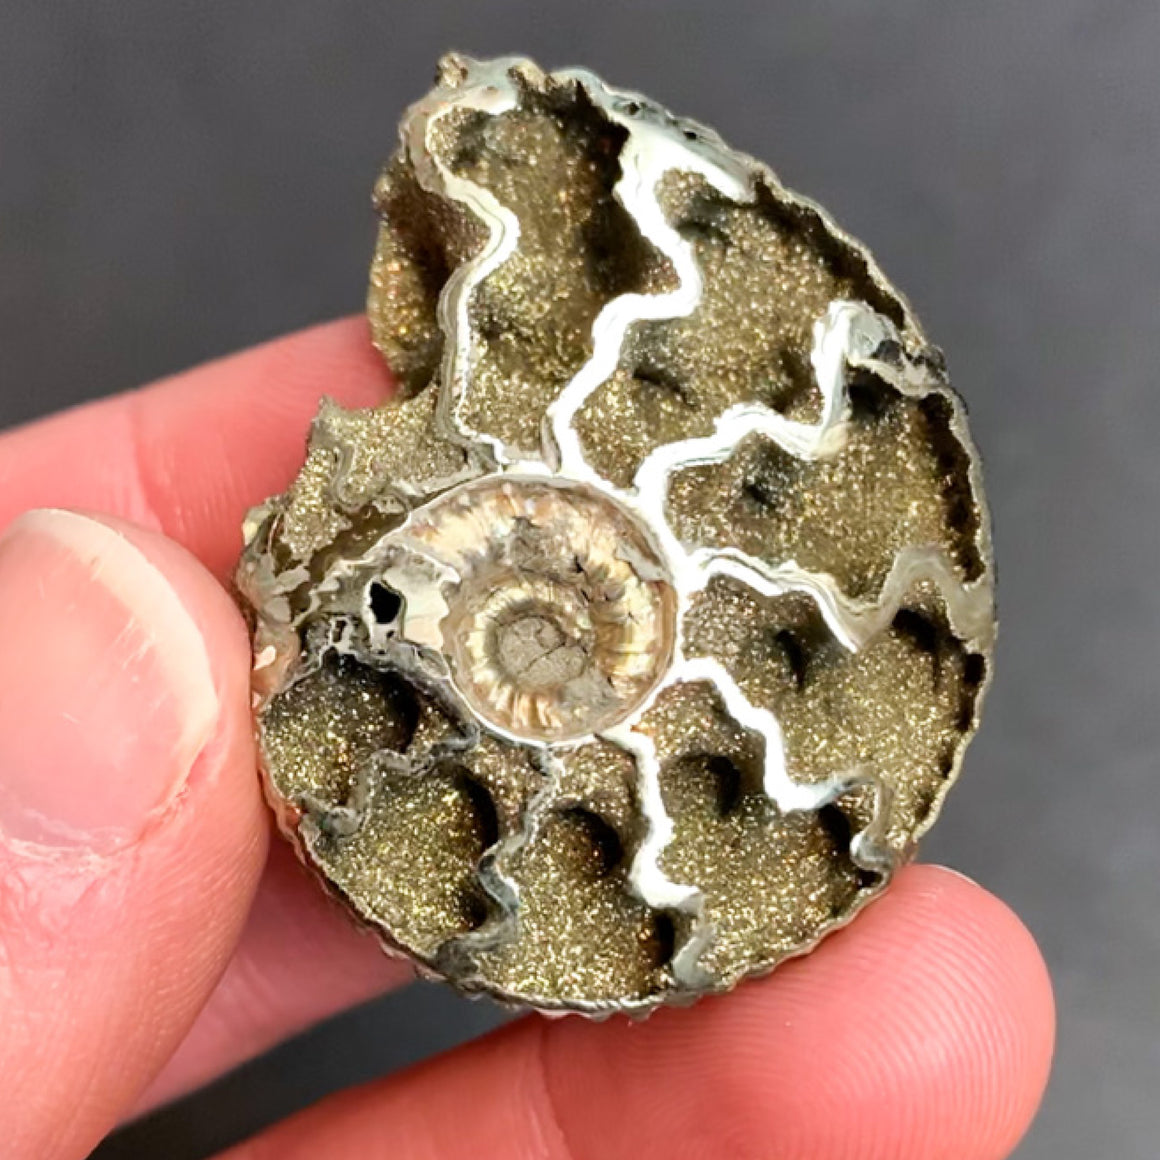 Pyritized Ammonite